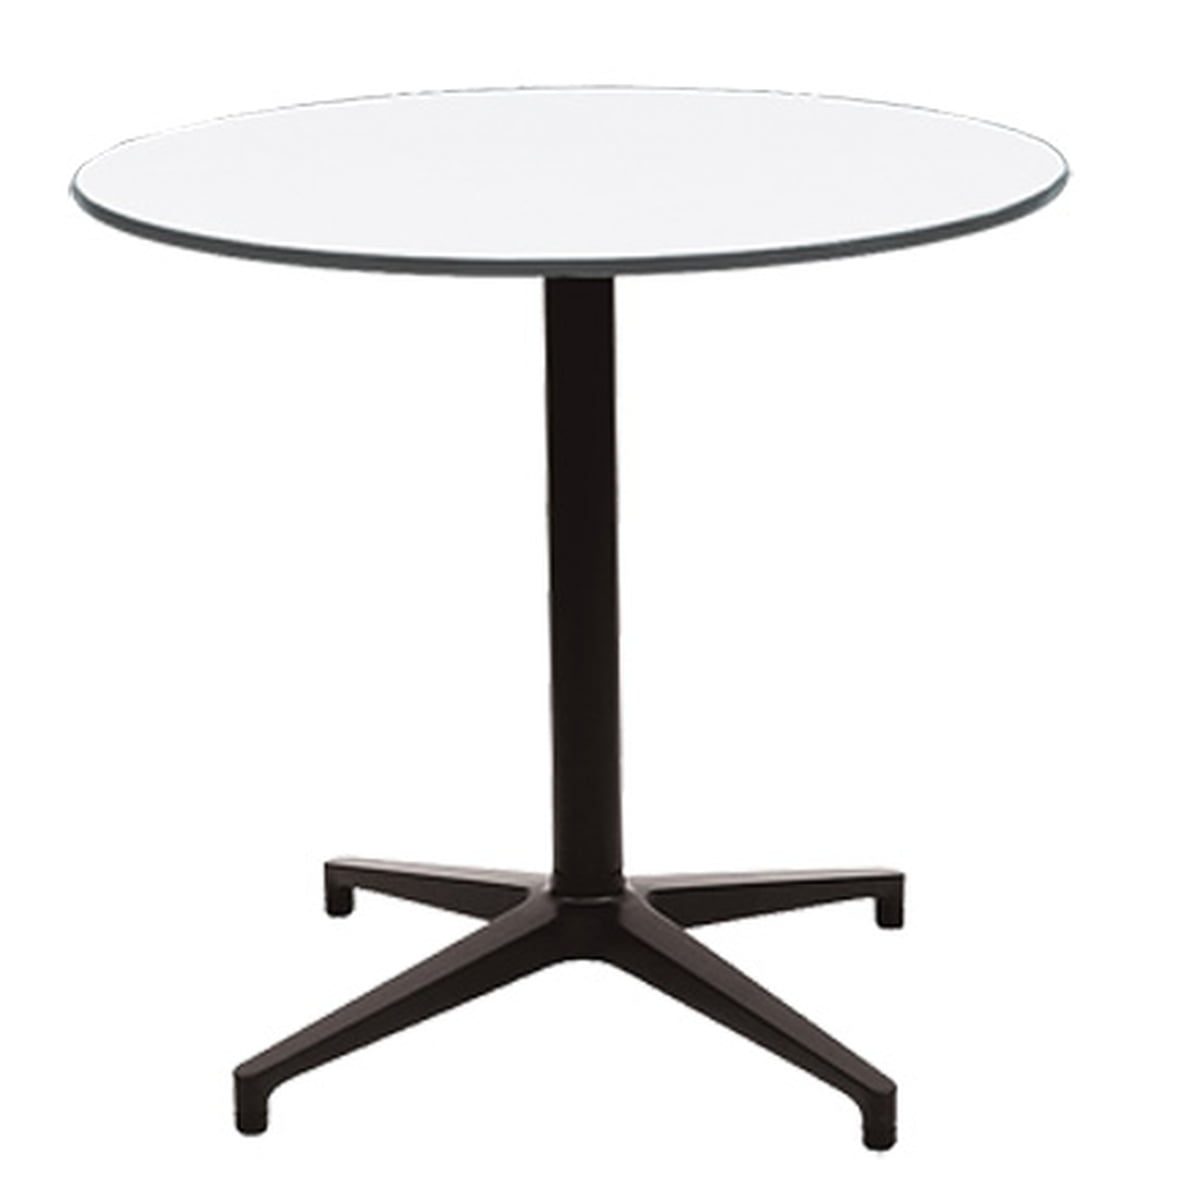 ... Vitra Bistro Table Rund Ø 79 6 Cm Weiß · 19th Century French Paris Round  White ...